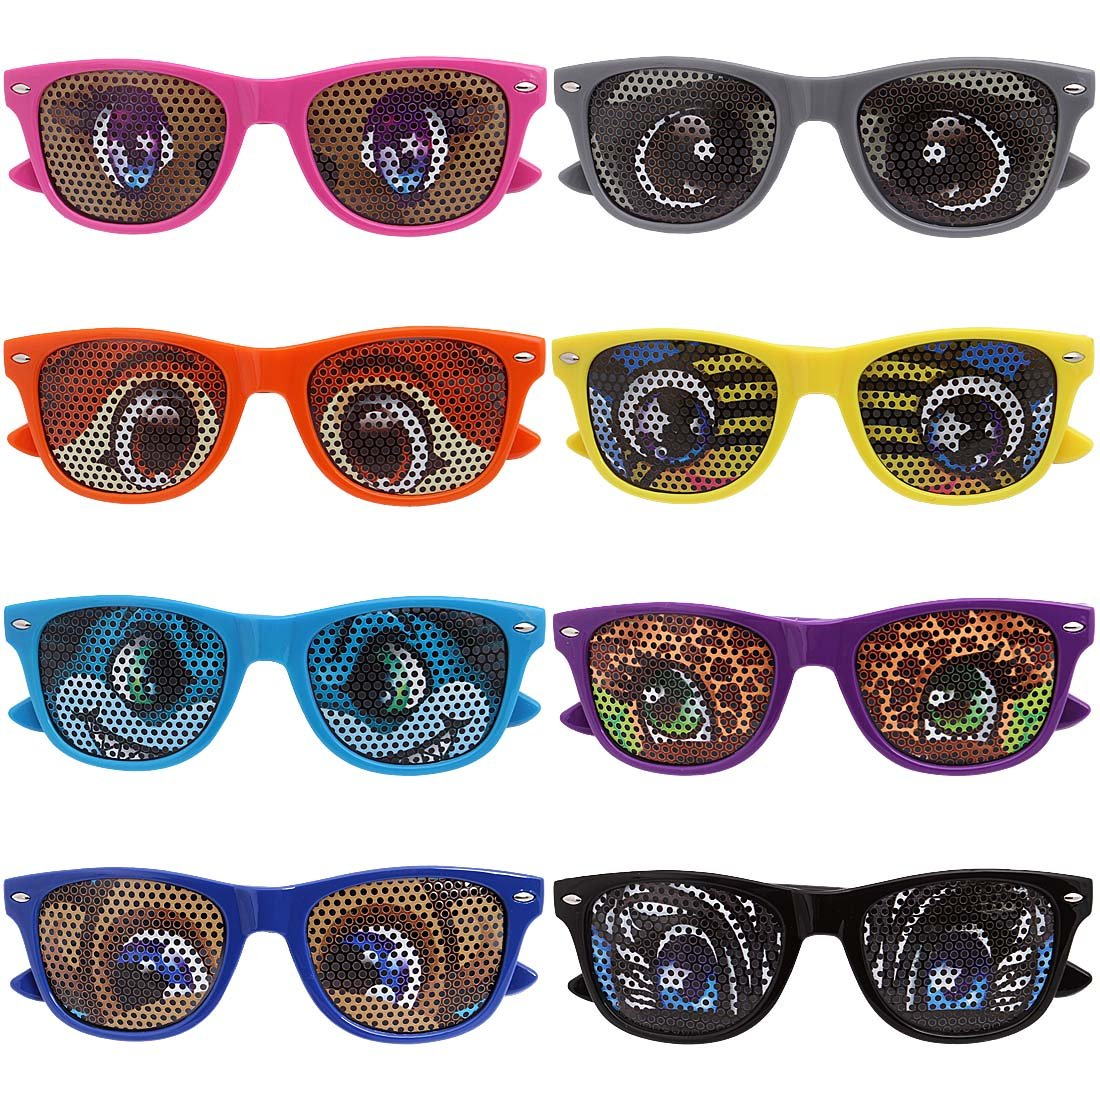 Ava /& Kings 8 pc Mixed Color Cartoon Animal Eye Decal Childrens Party Sunglasses Little Kids